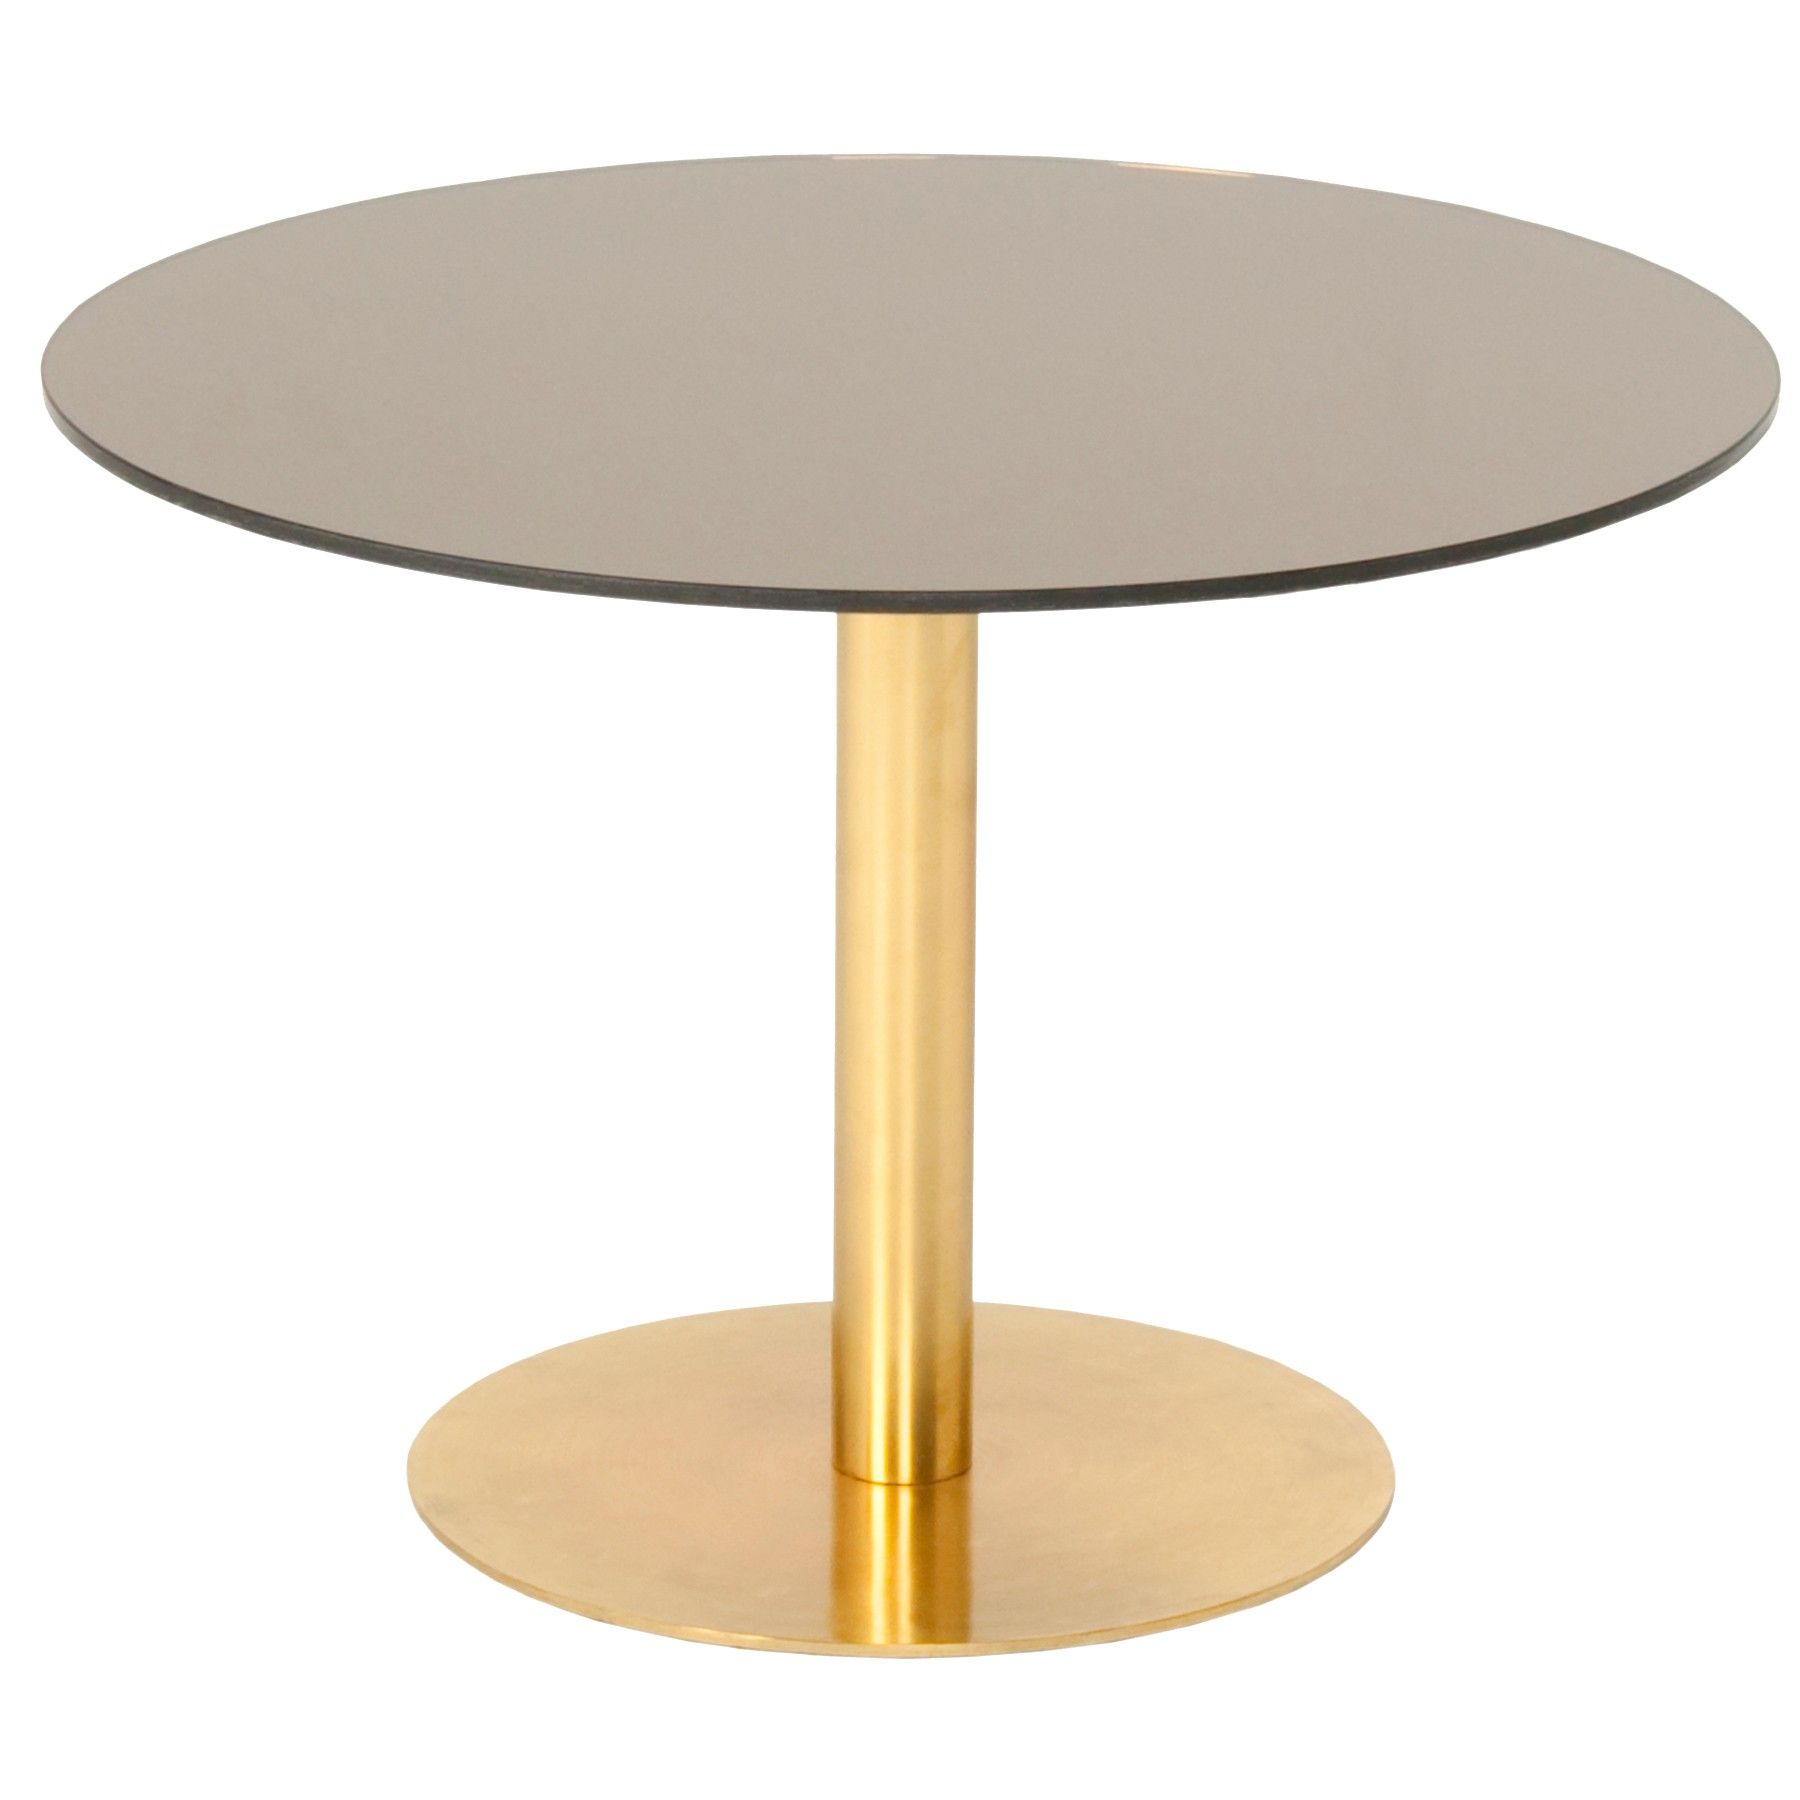 Tom Dixon Couchtisch Tom Dixon Flash Table Circle Couchtisch 60 Flinders Versendet Gratis